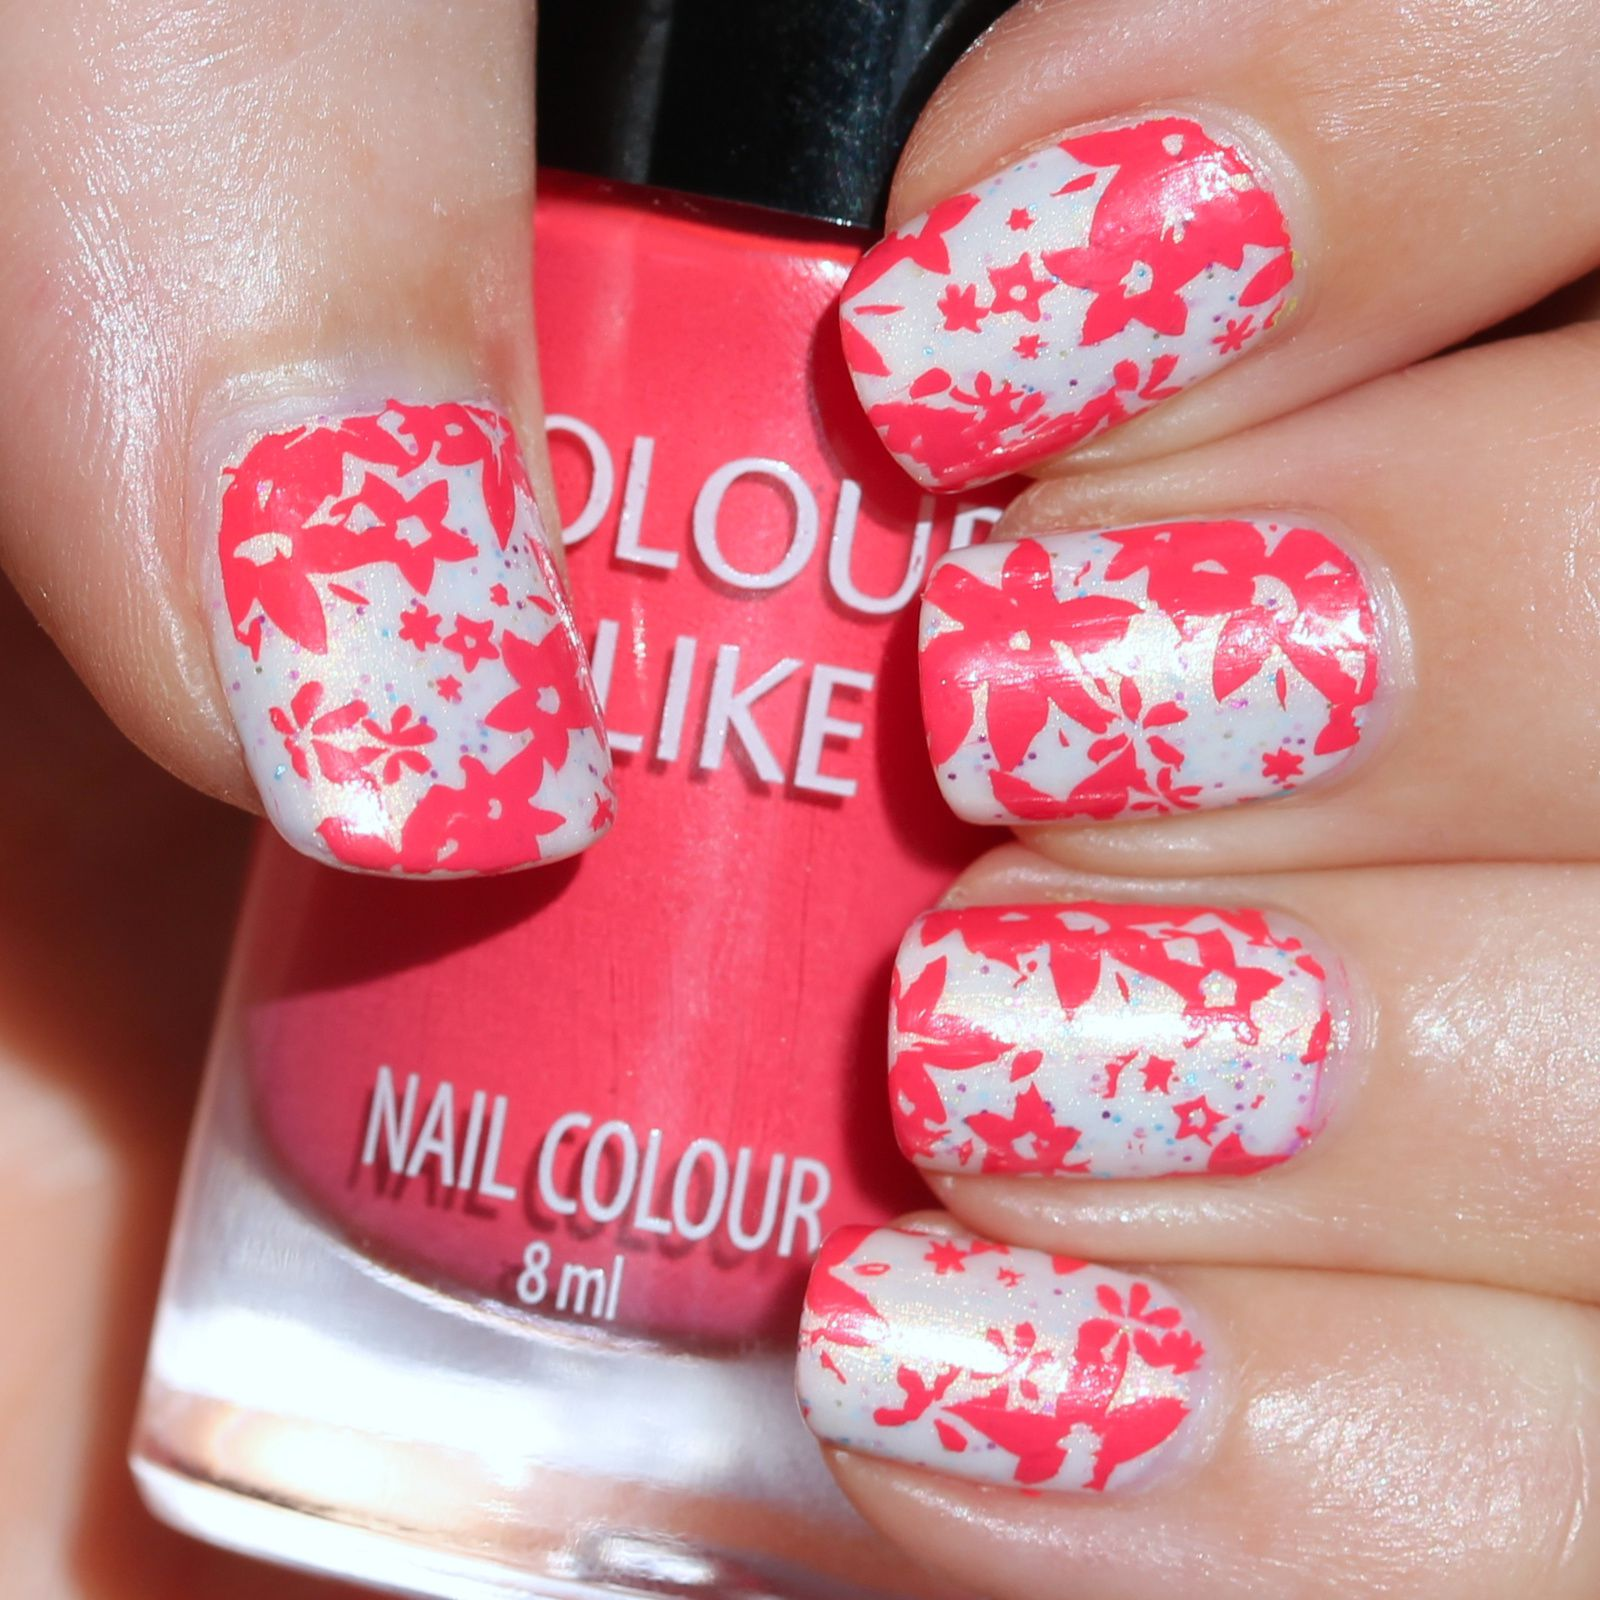 Sally Hansen Complete Care 4-in-1 Extra Moisturizing Nail Treatment / Polish Addict Nail Color Jellyfish I /  Colour Alike Sunset & Moyou Pro Collection 06 stamping / Konad Top Coat